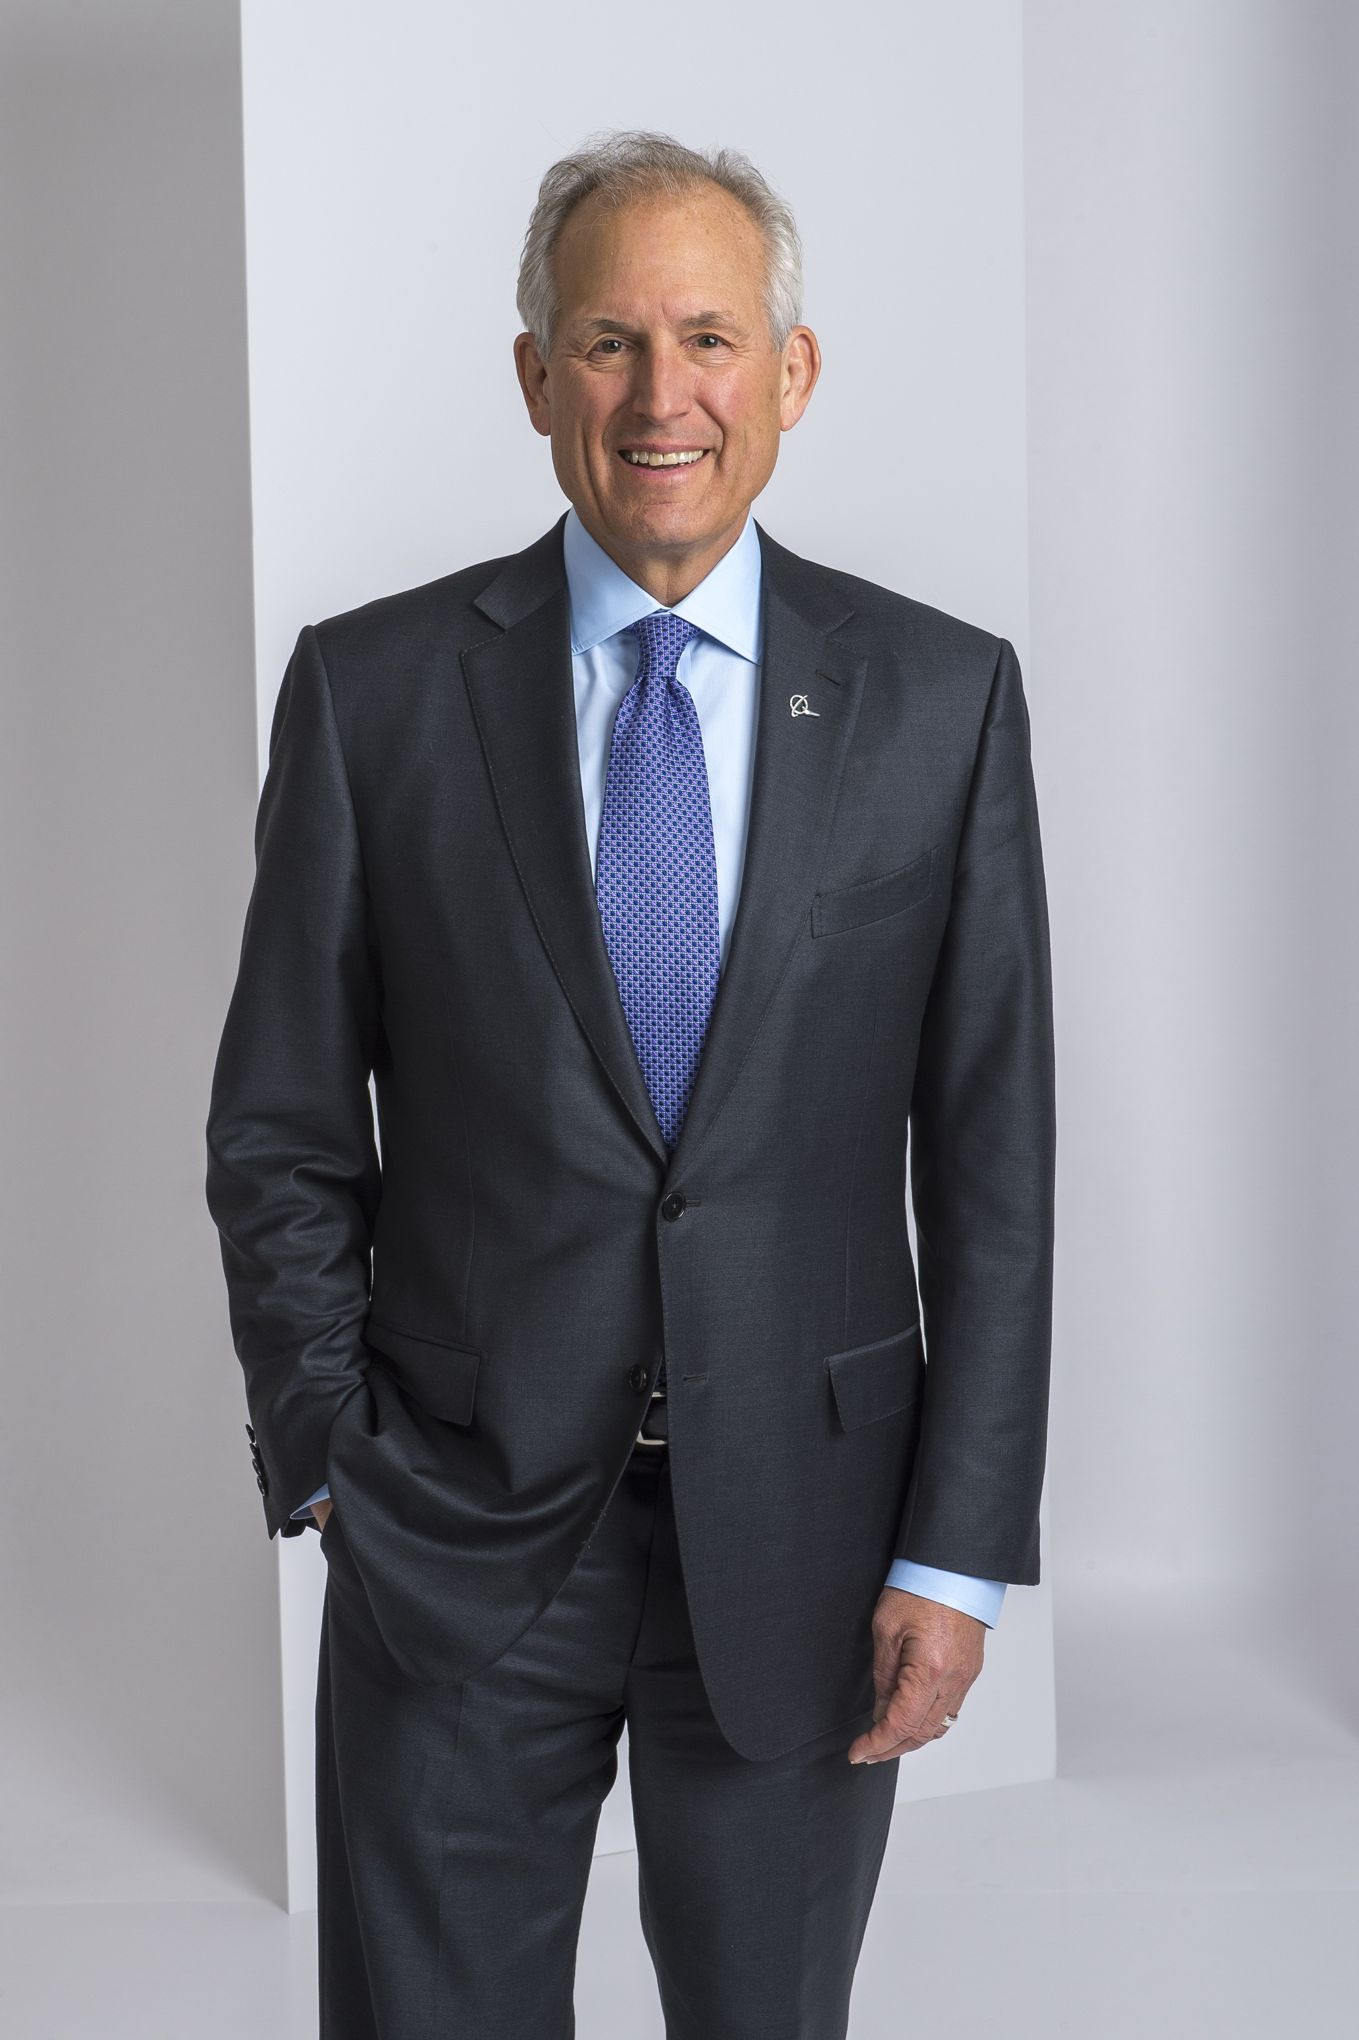 james mcnerney leadership ethics at boeing Boeing replaces ceo mcnerney with muilenburg  boeing leadership change 'generational shift':  w james mcnerney and dennis muilenburg of boeing.